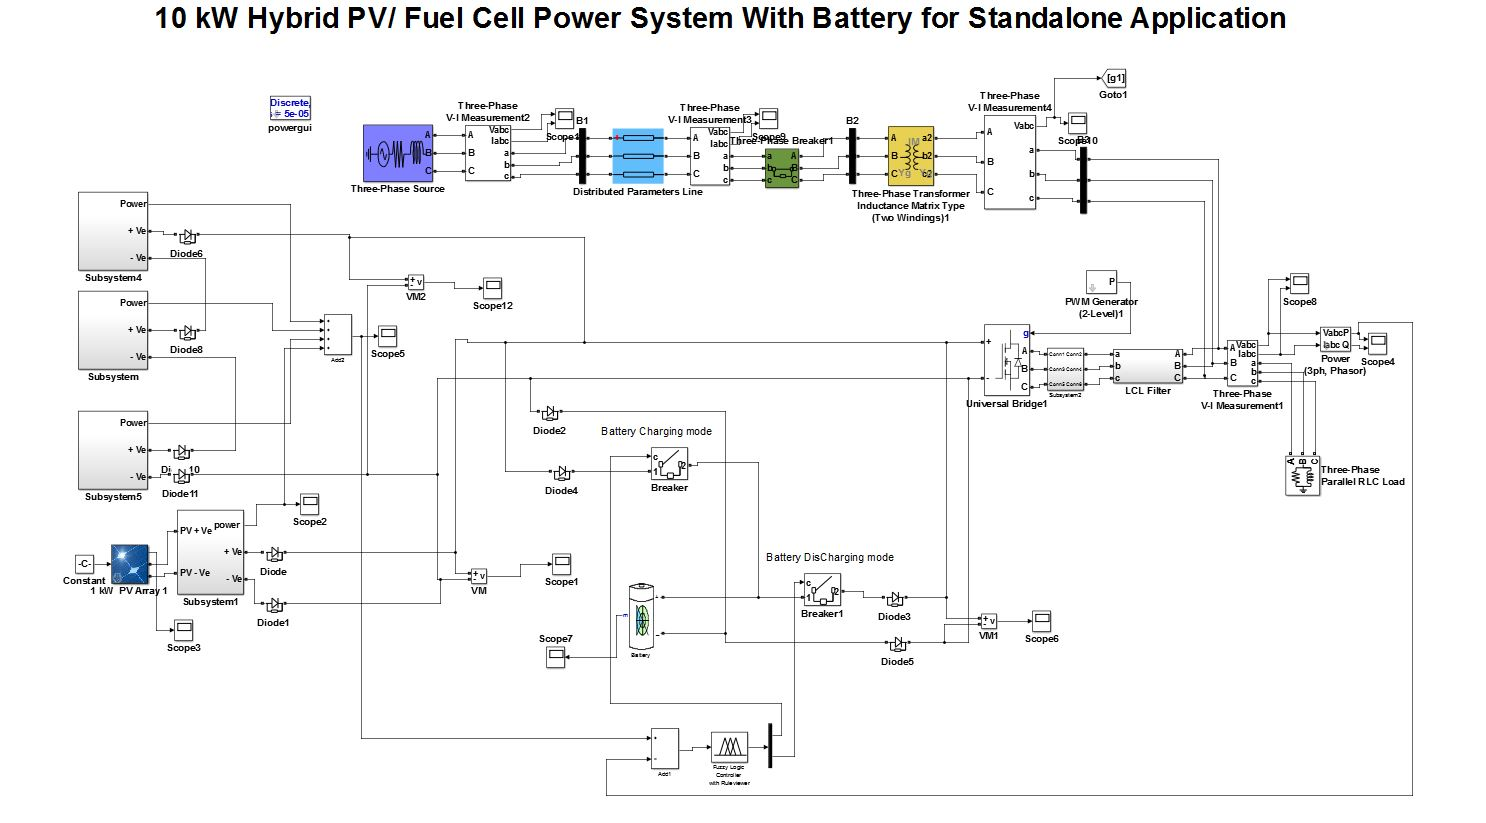 Fuzzy Logic Control Based Pms For Grid Integration Of 10 Kw Hybrid Diagram Pv Fc Power System